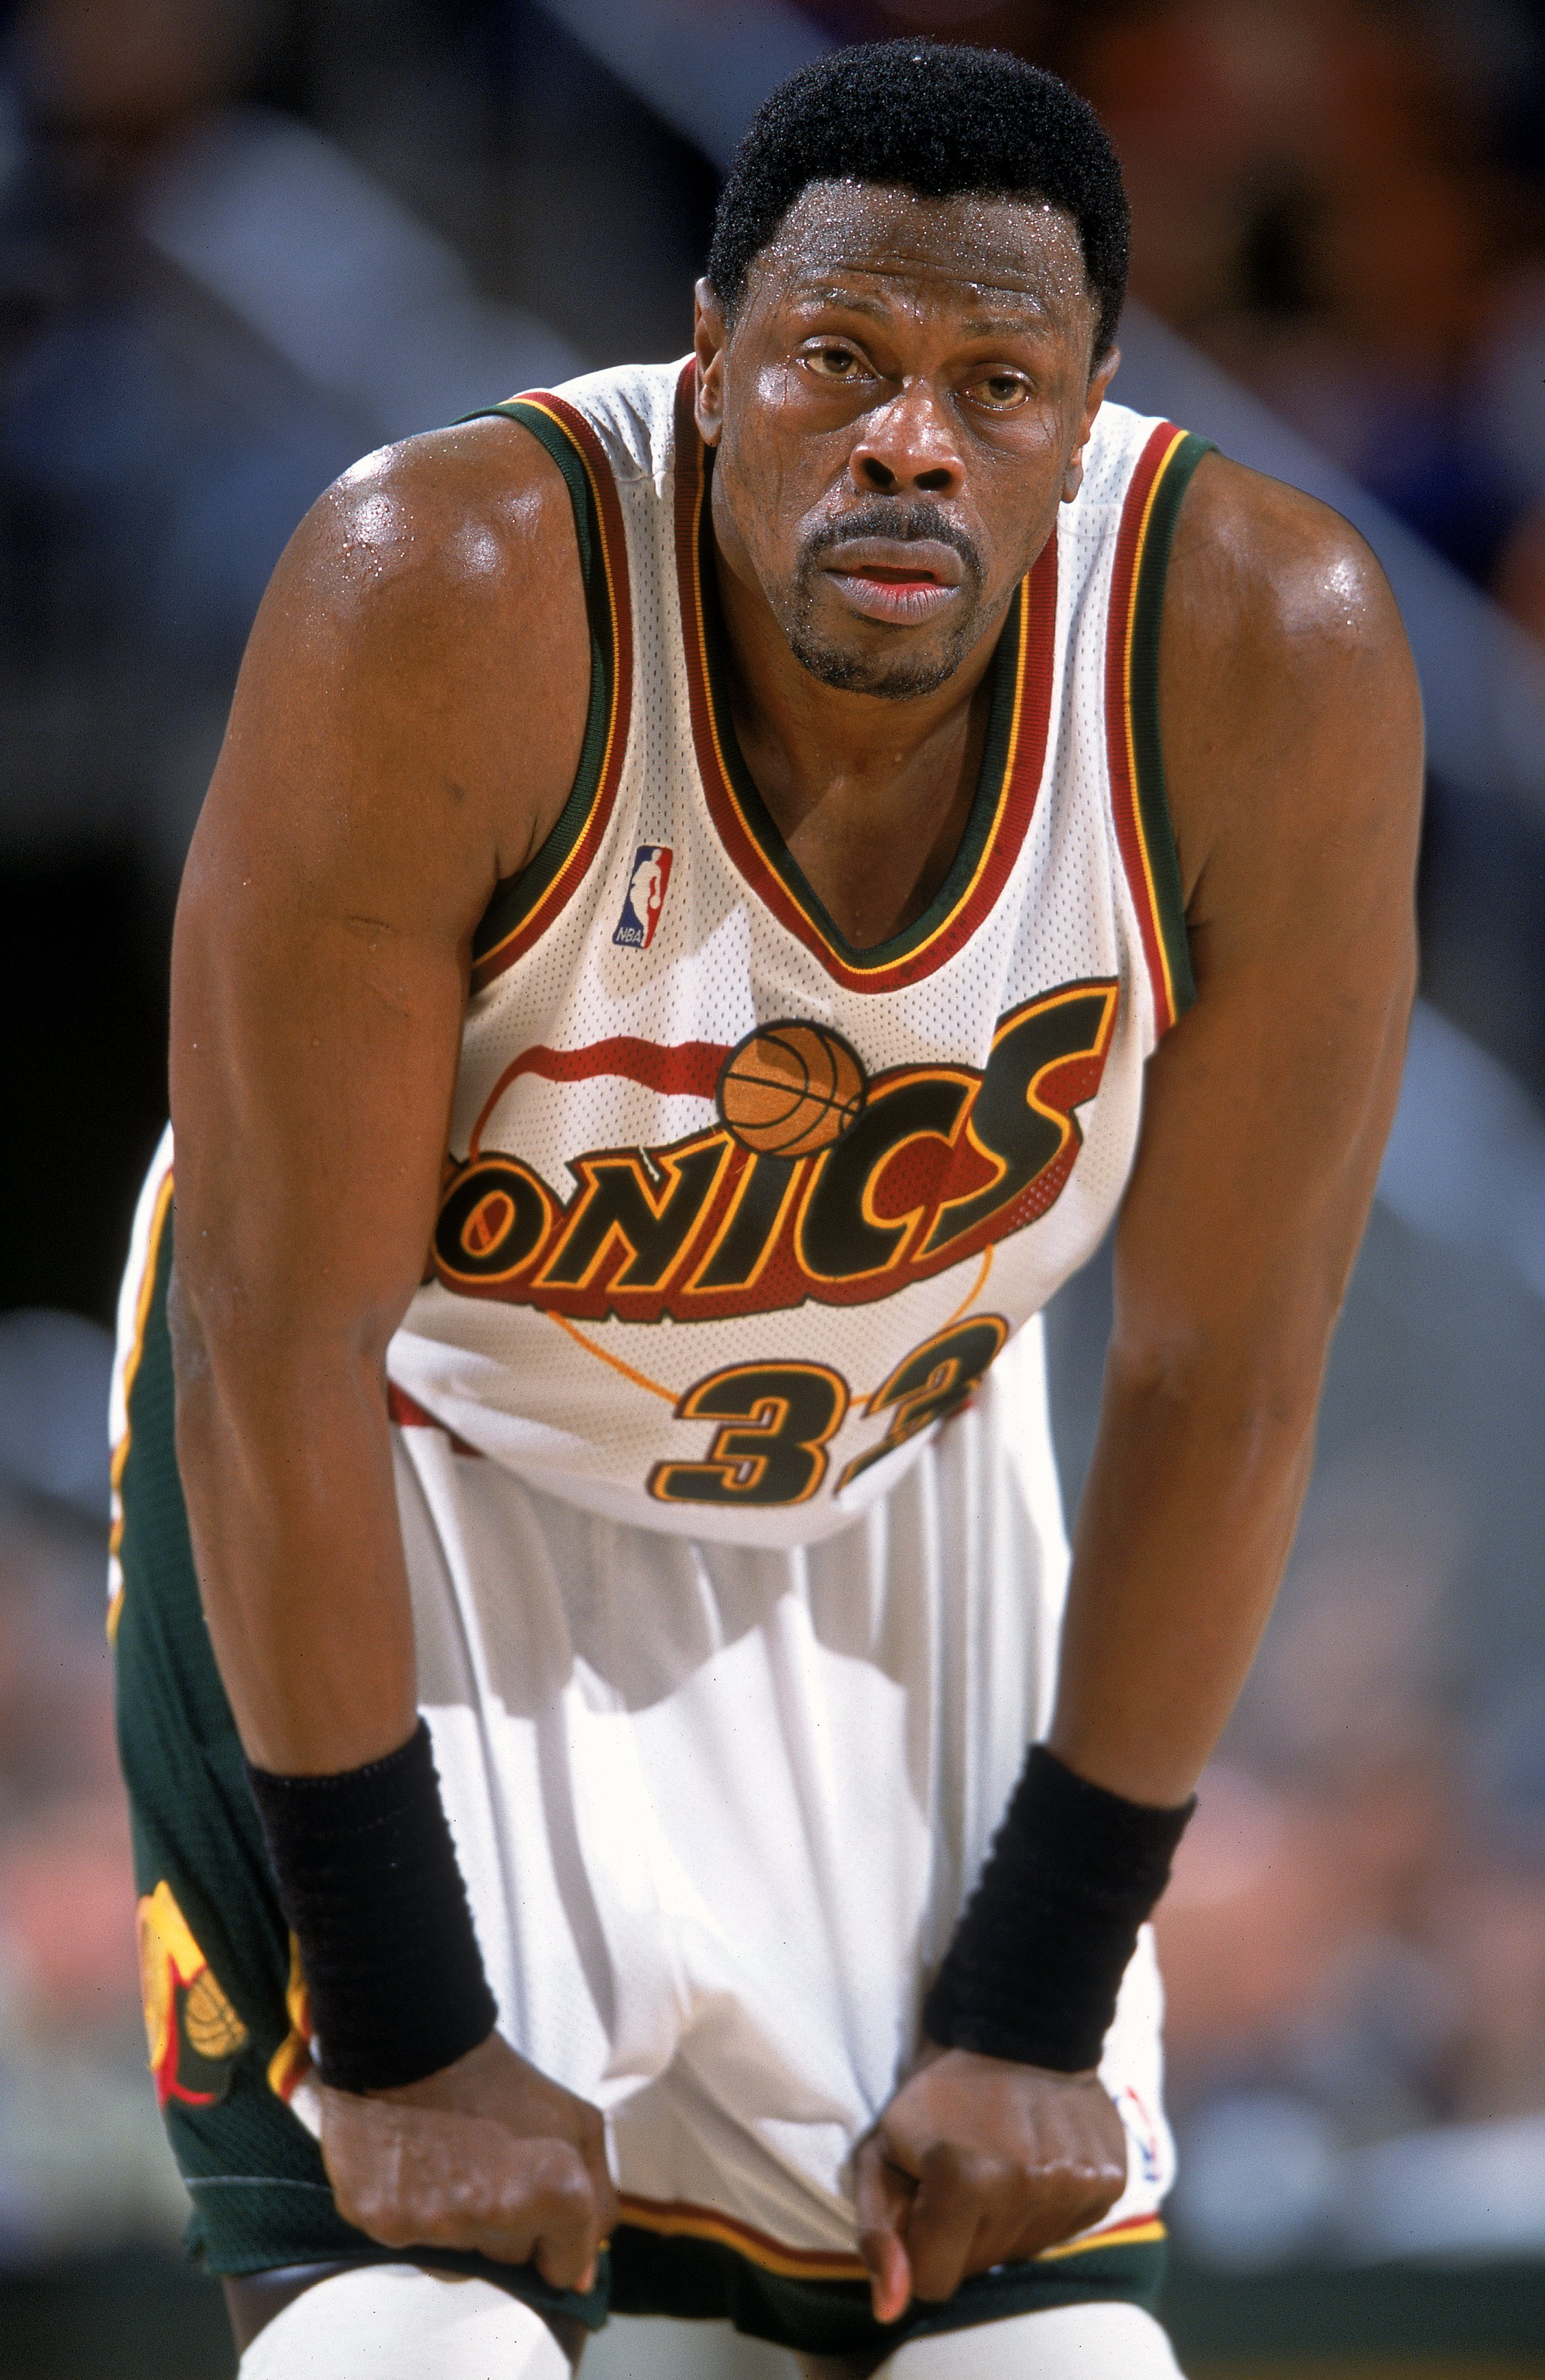 a8c669b9e901 9 Dec 2000  Patrick Ewing  33 of the Seattle SuperSonics looks on from the